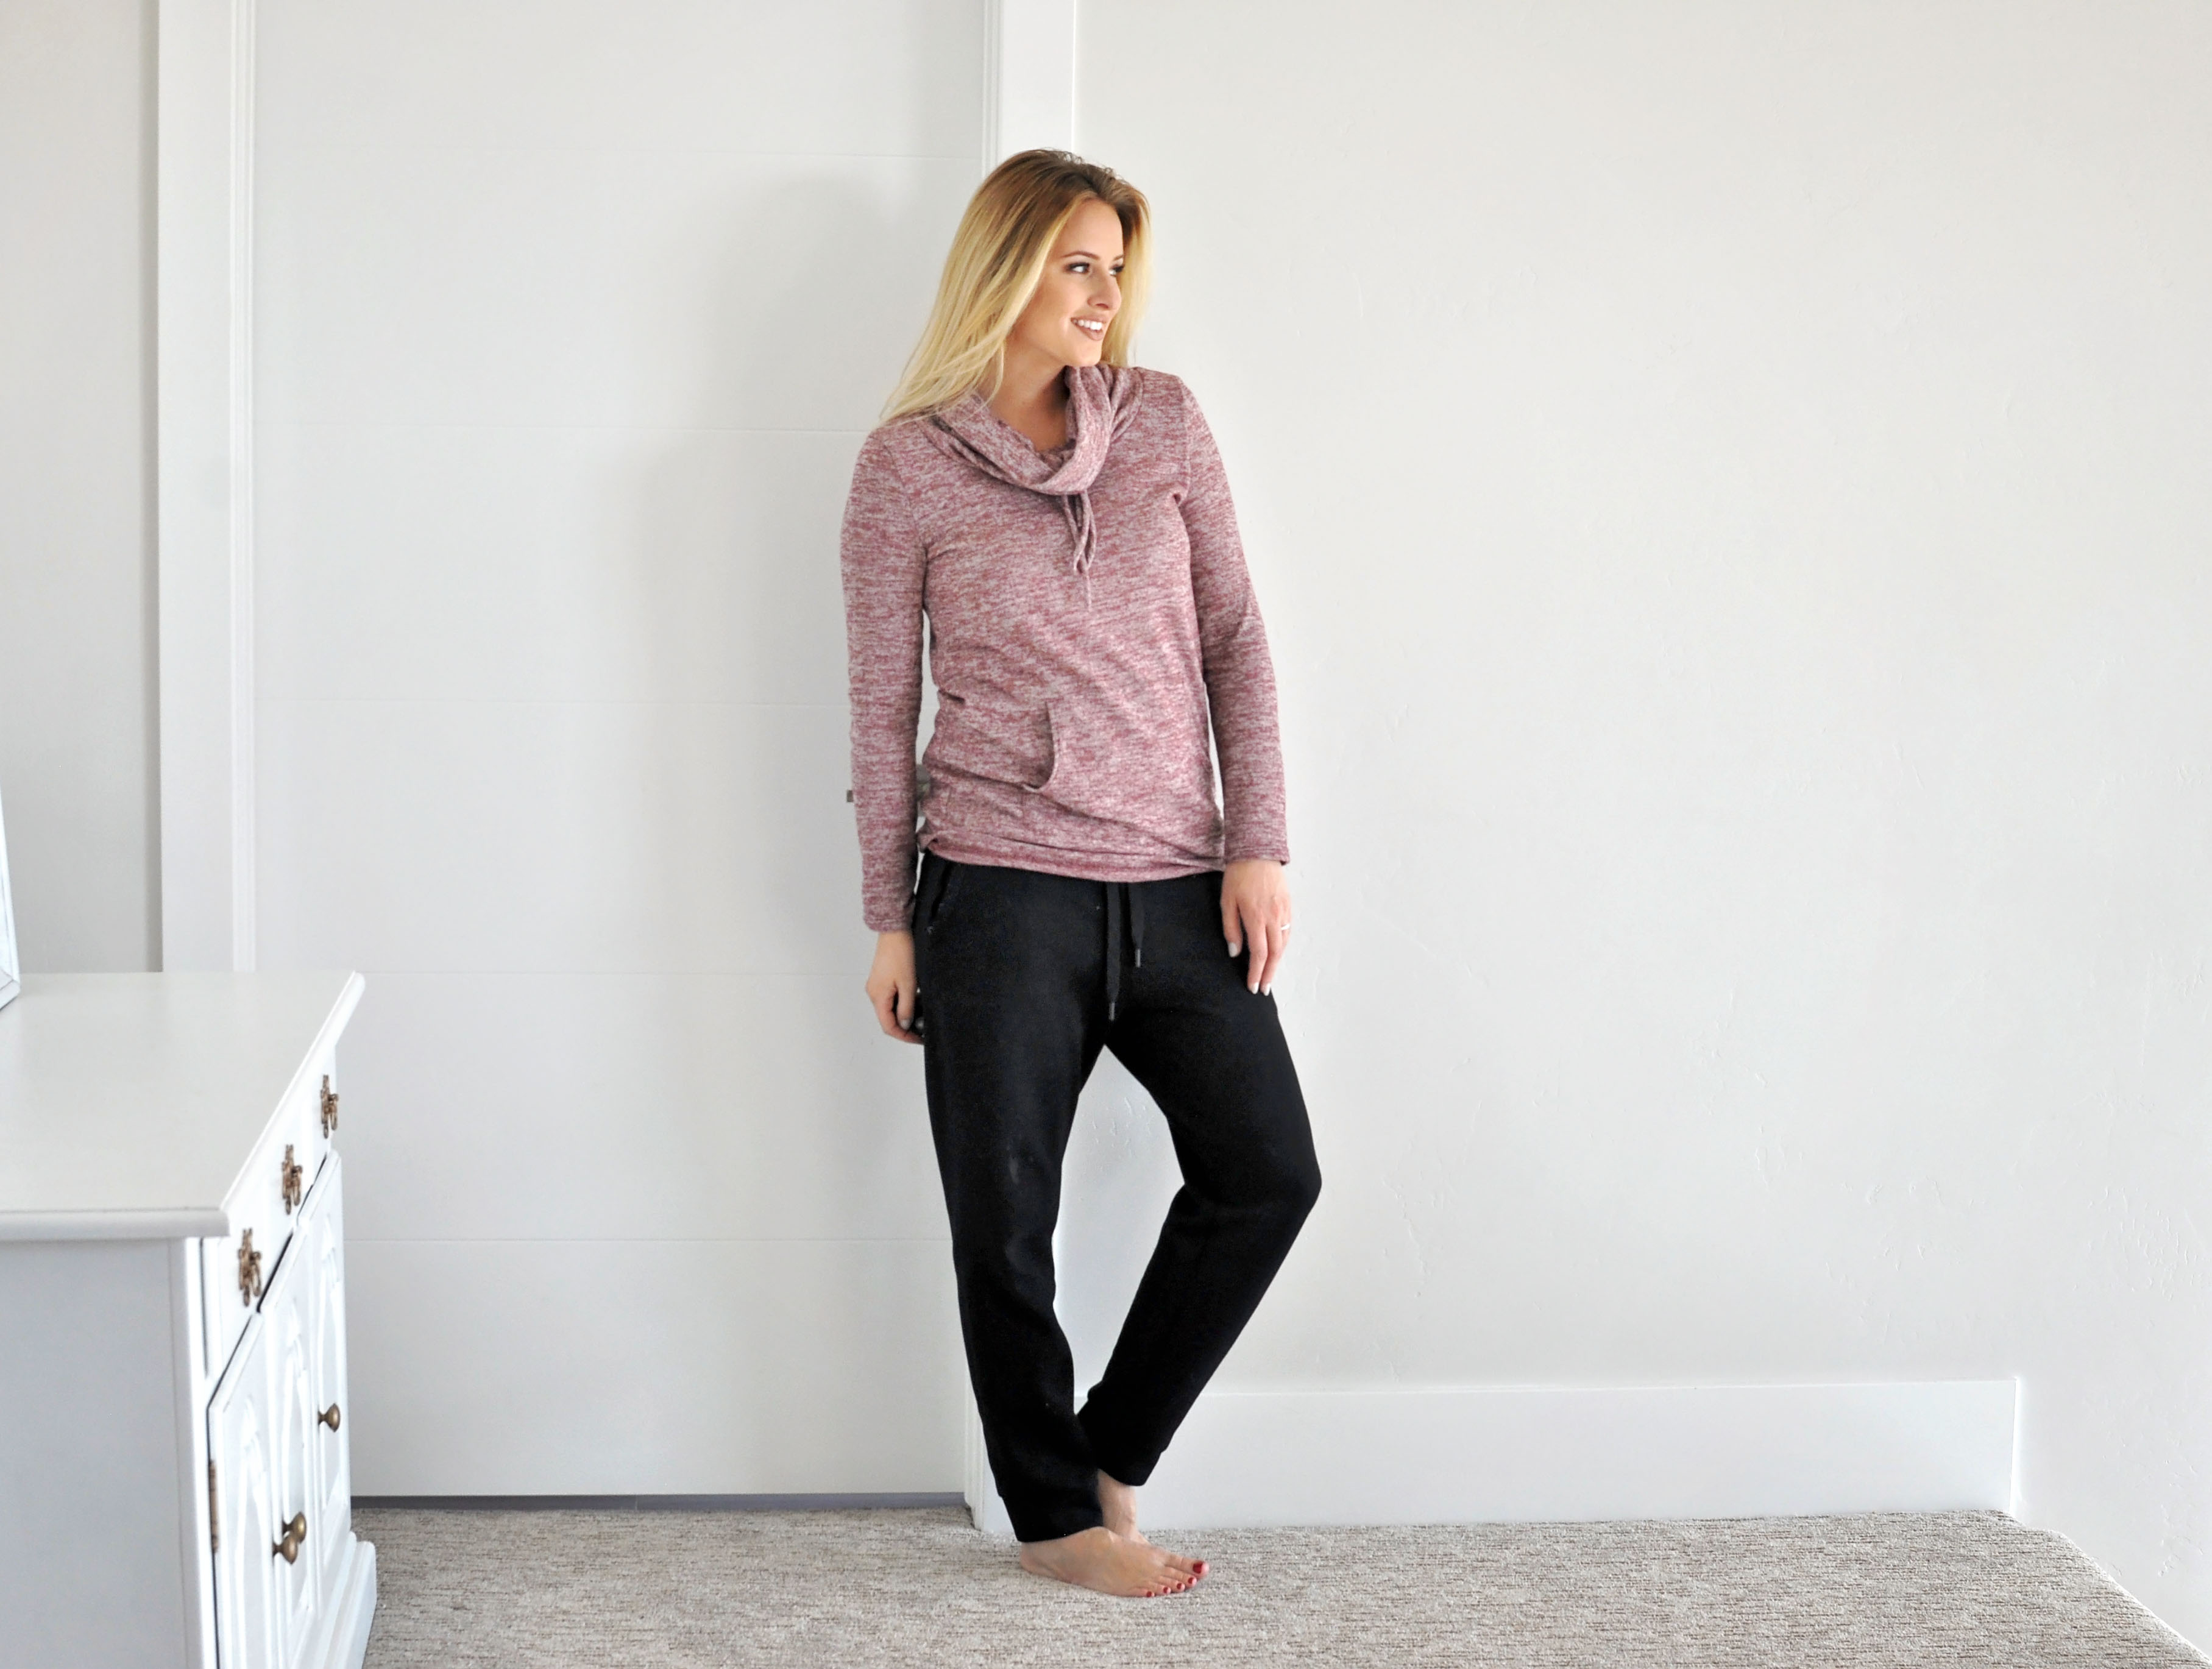 Love the neck of this top. This sweatshirt is on sale right now for 12.95. That's amazing.